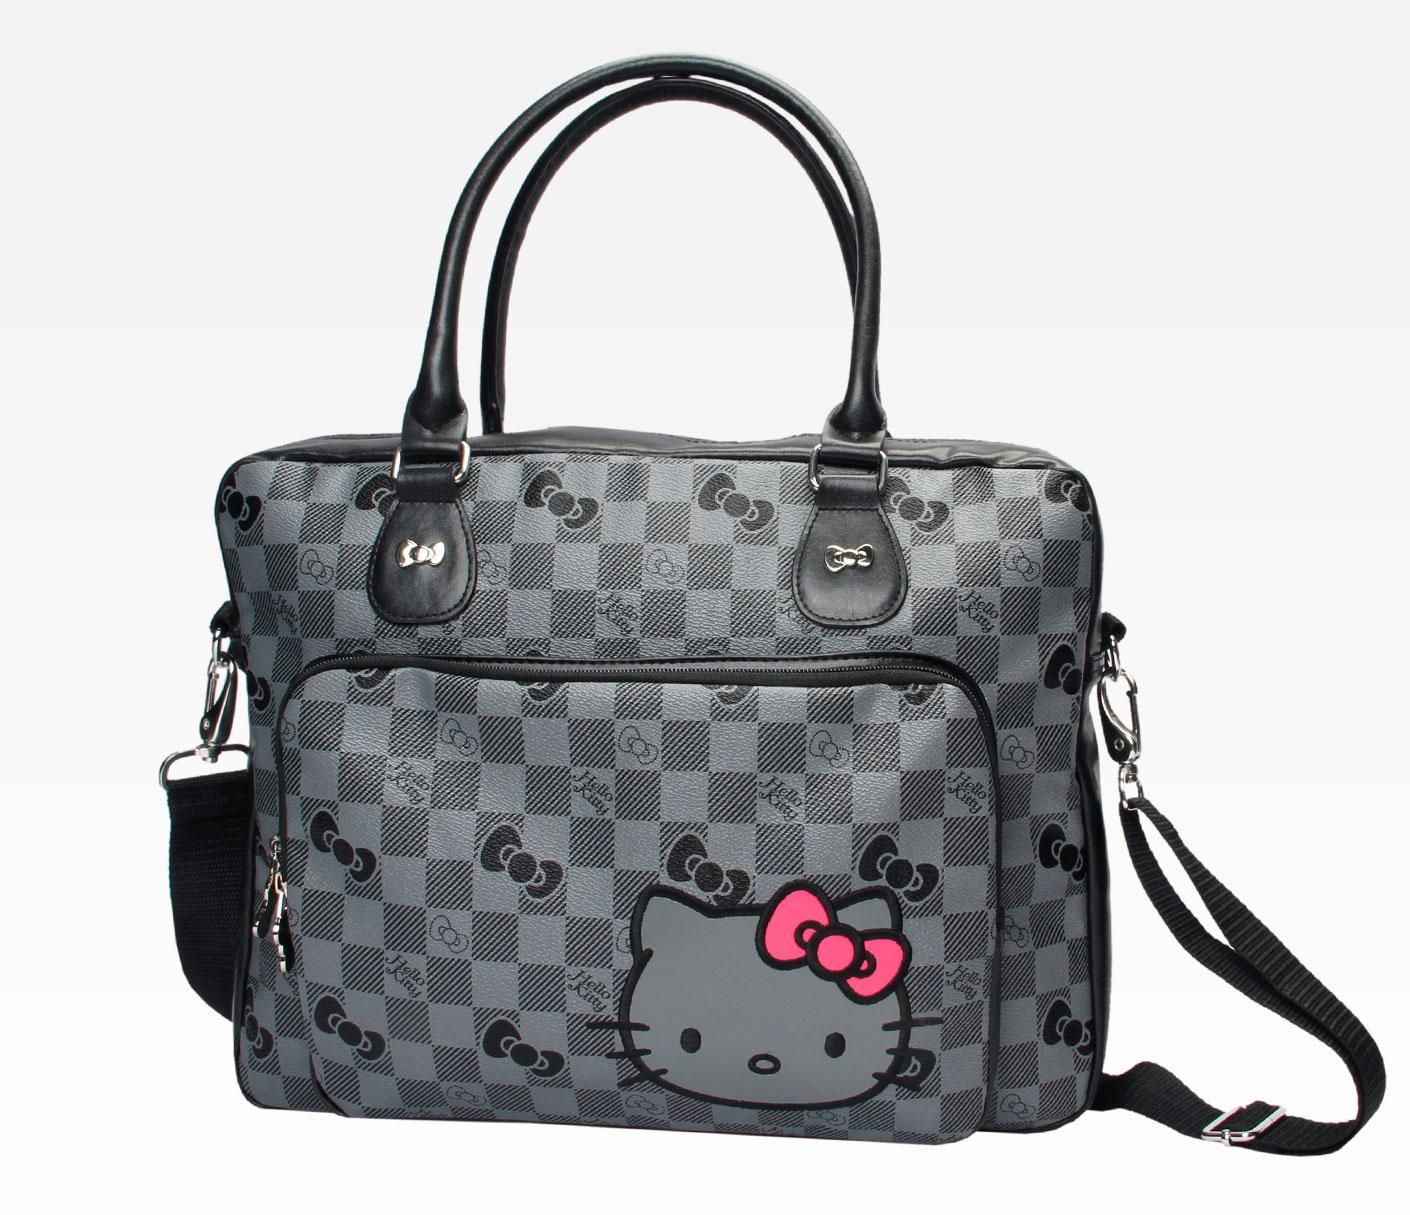 b575d7096 Hello Kitty Laptop Carry Case: Grid in Accessories Electronics Laptop  Sleeves, Cases & Bags at Sanrio. A laptop bag that can fit my 17